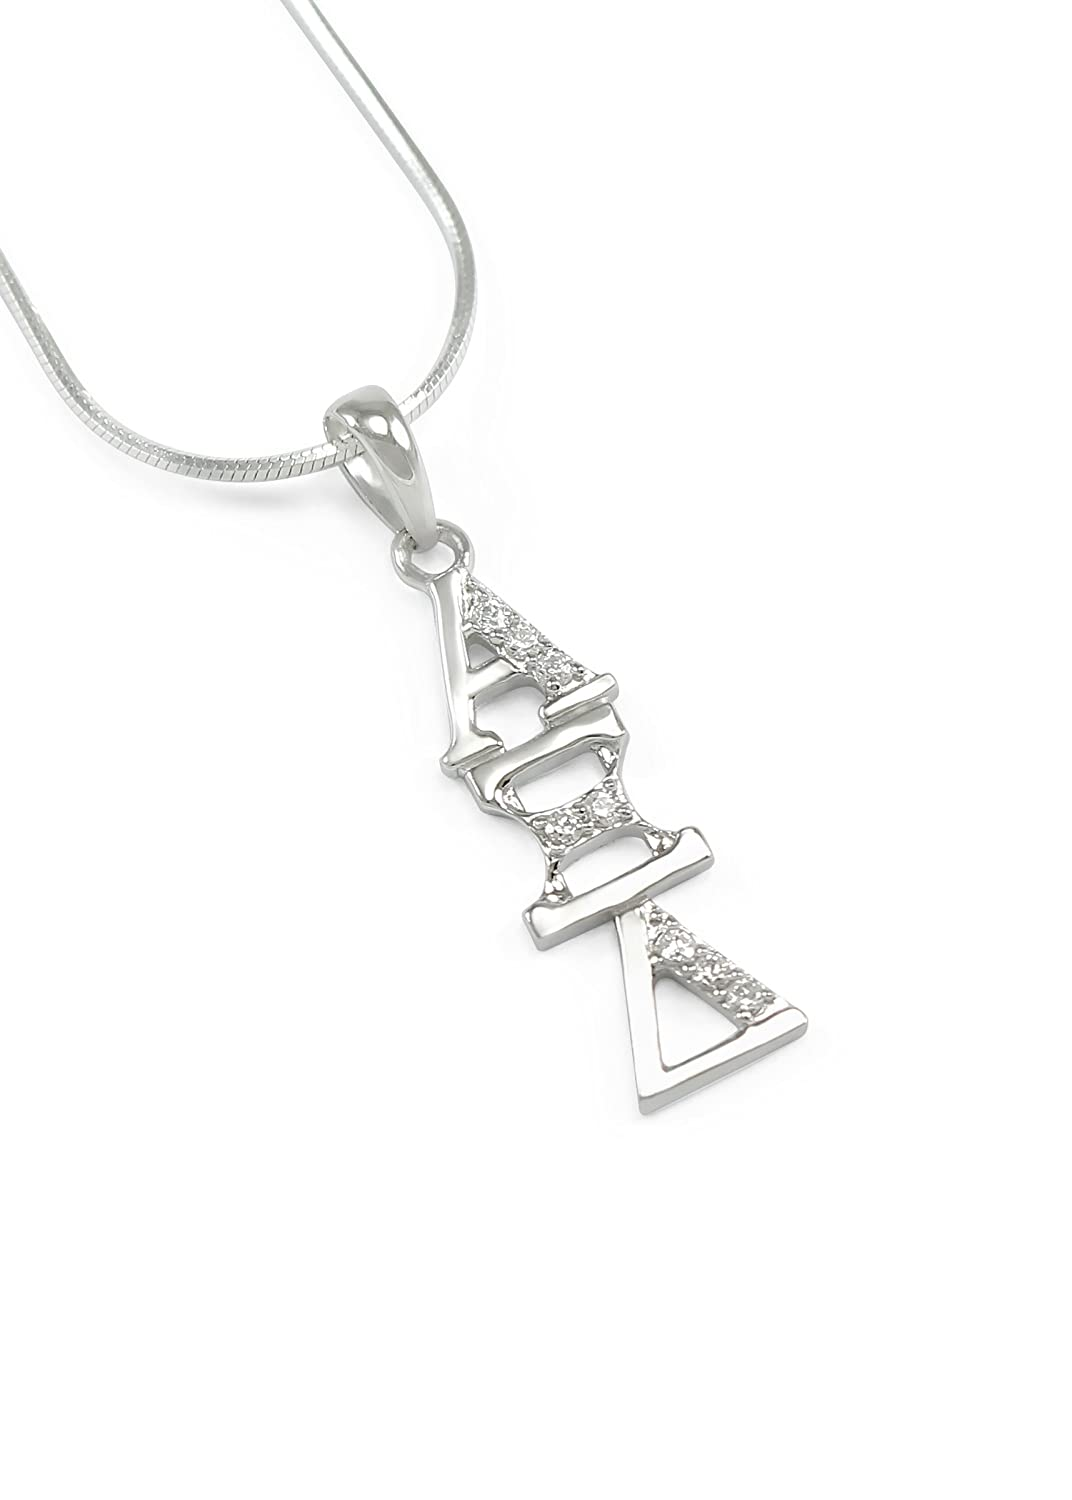 The Collegiate Standard Alpha Xi Delta Sterling Silver Lavaliere with CZs